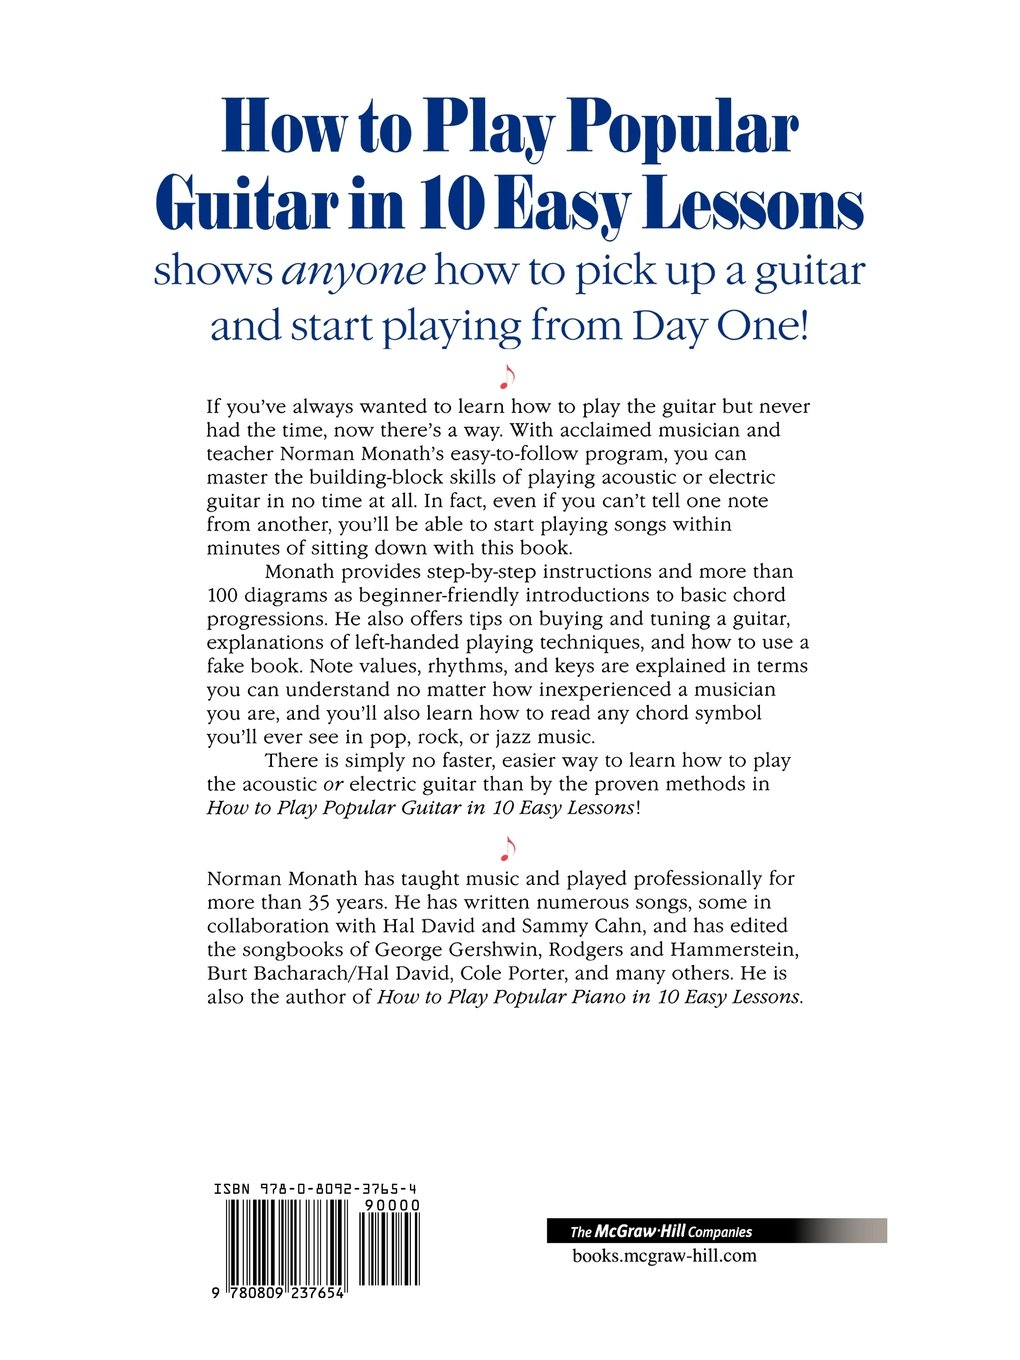 How To Play Popular Guitar In 10 Easy Lessons Norman Monath